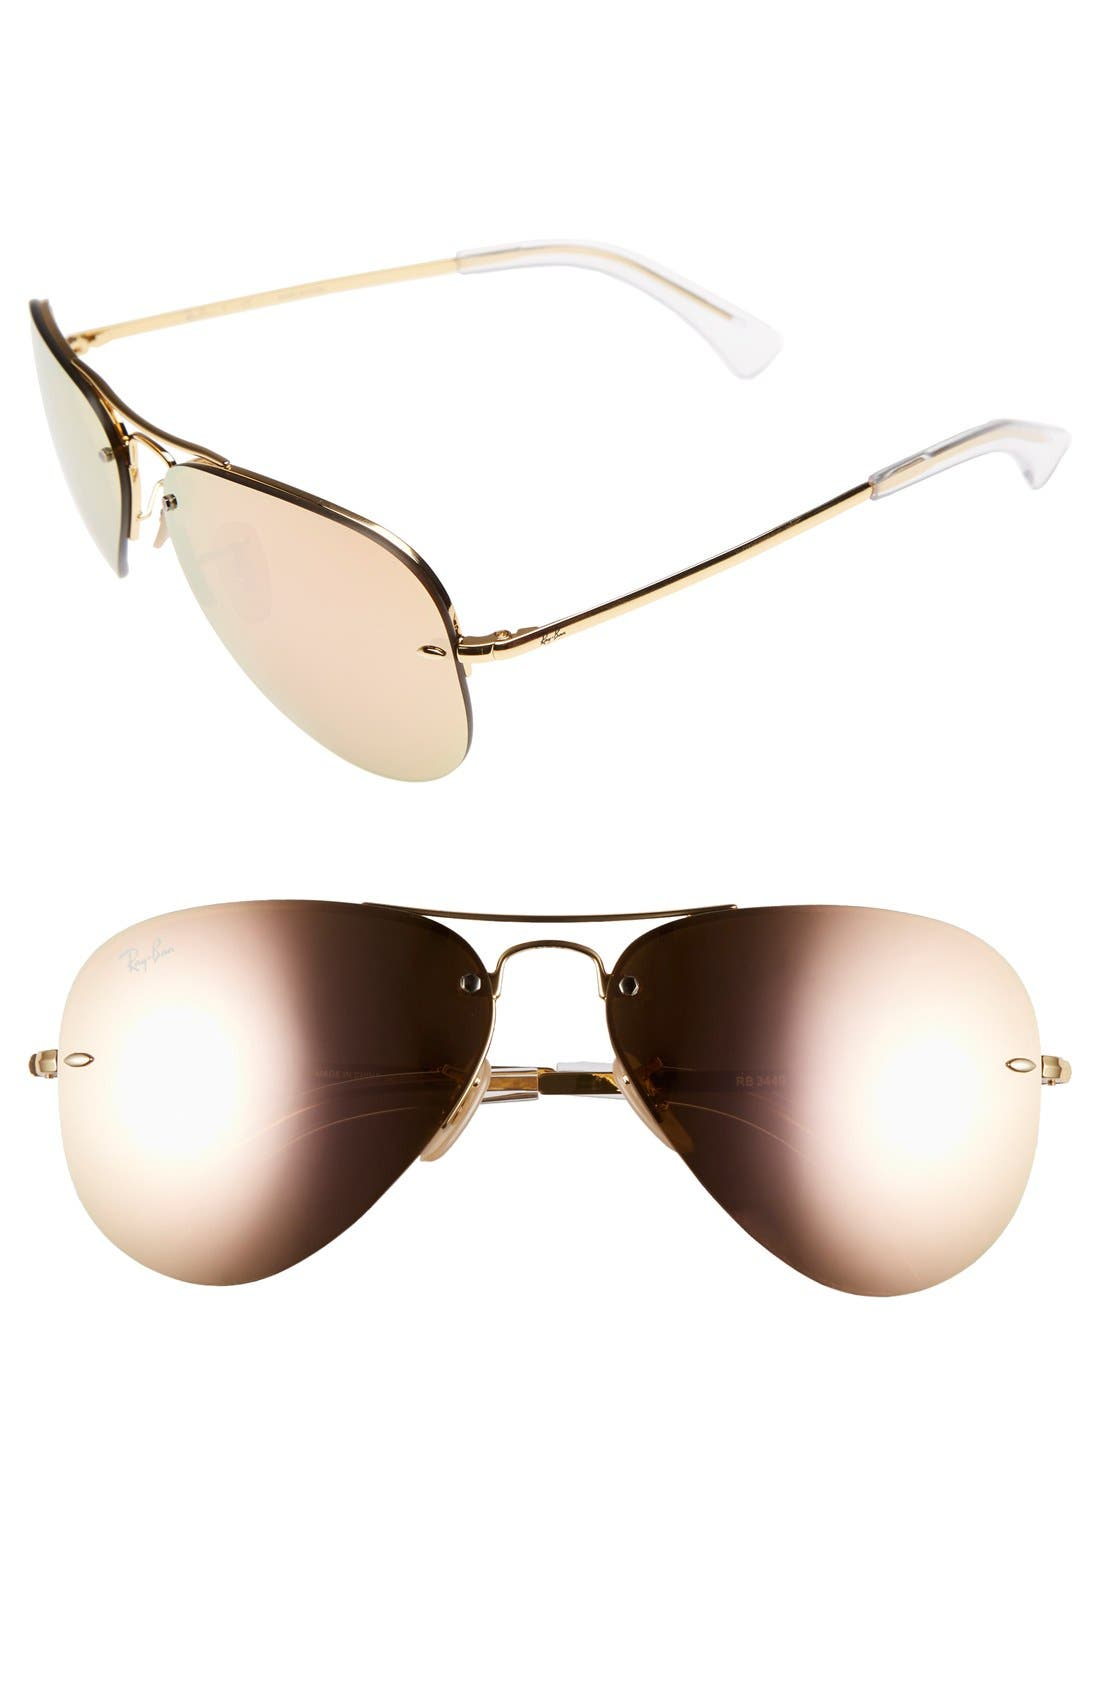 Main Image - Ray-Ban Highstreet 59mm Semi Rimless Aviator Sunglasses